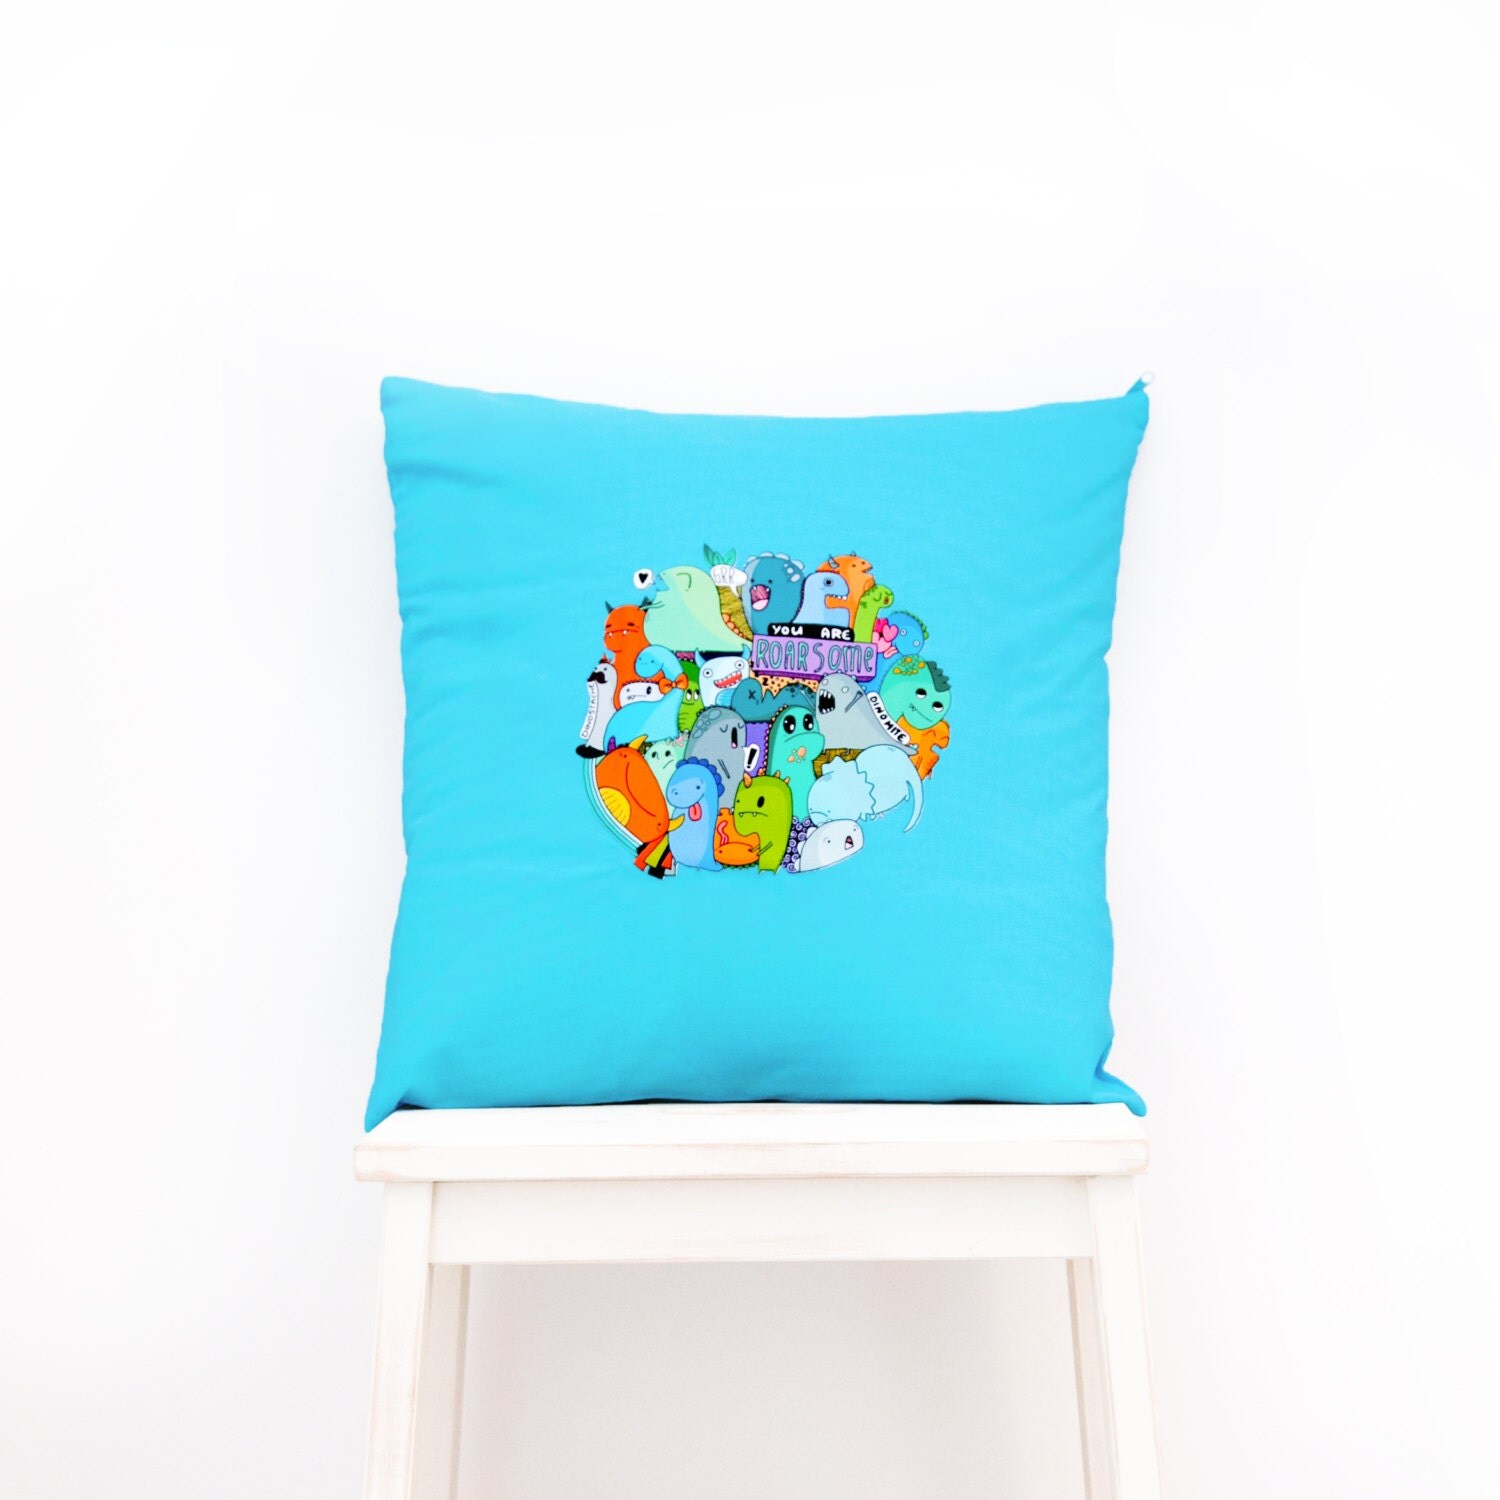 Roarsome  Kawaii Dinosaur Cushion home decor for childrens bedroom nursery or cosy accessories for the home. Blue w multi coloured hues